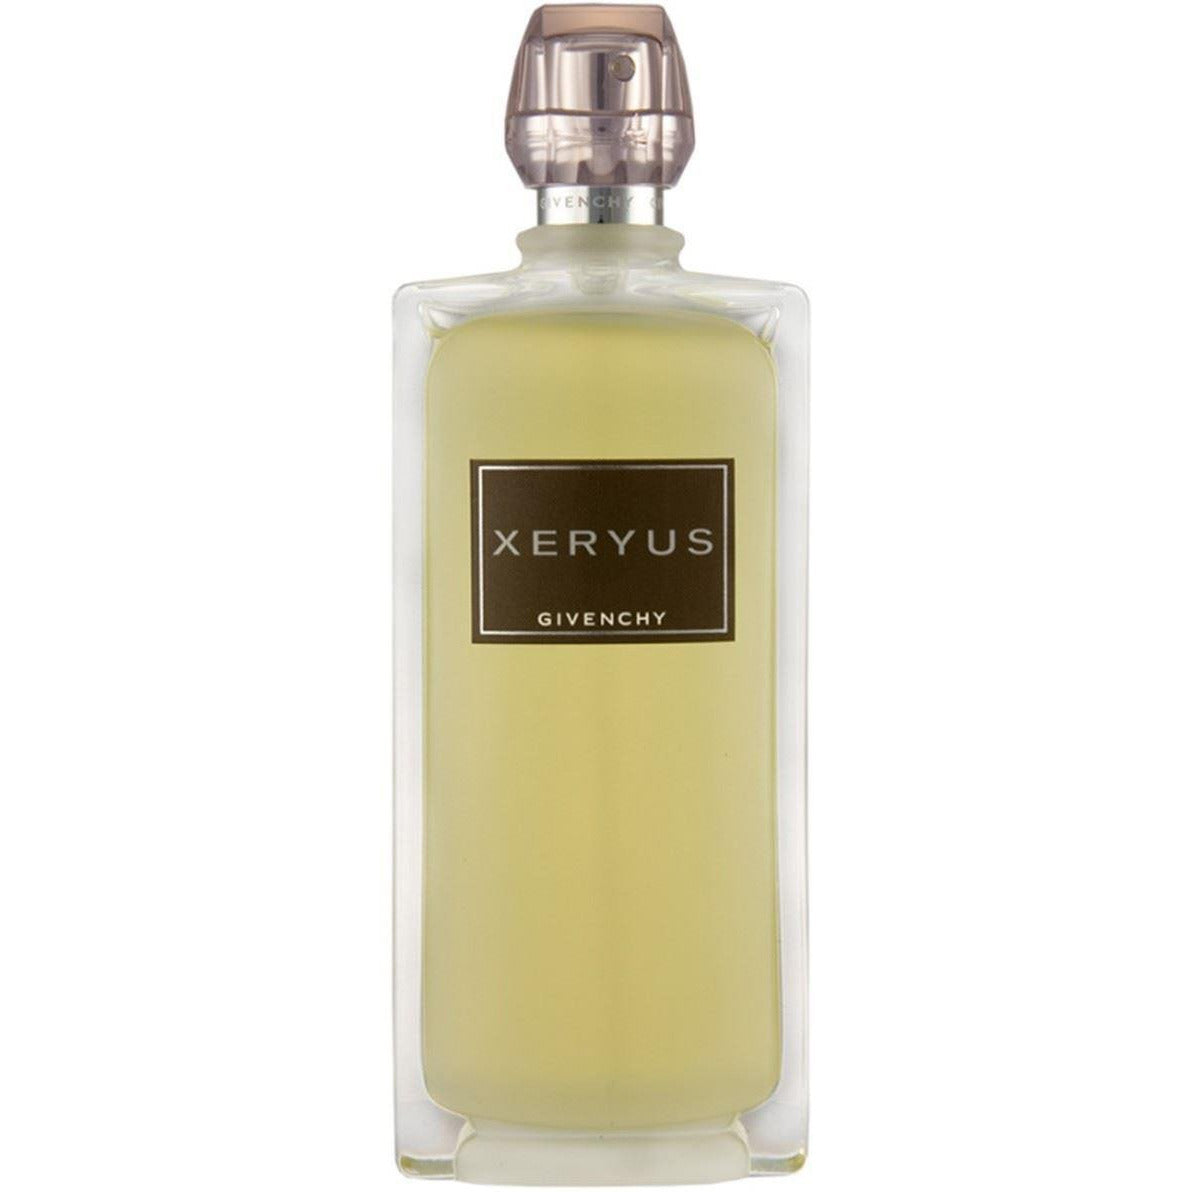 xeryus-mythical-givenchy-men-cologne-edt-3-4-oz-3-3-new-tester